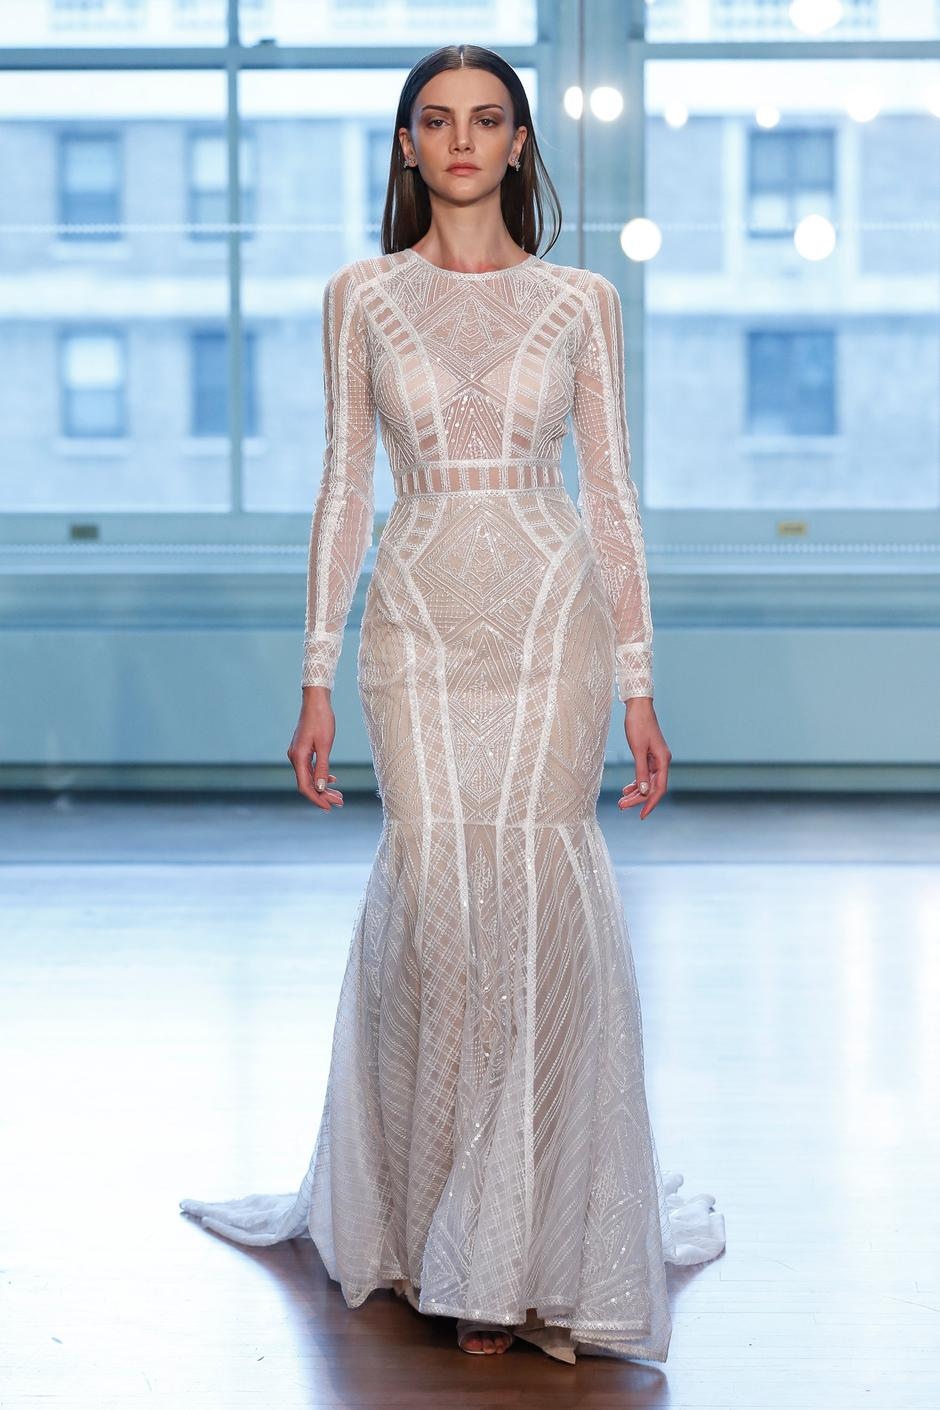 New York Bridal Market: Justin Alexander Spring 2019 wedding dress ...